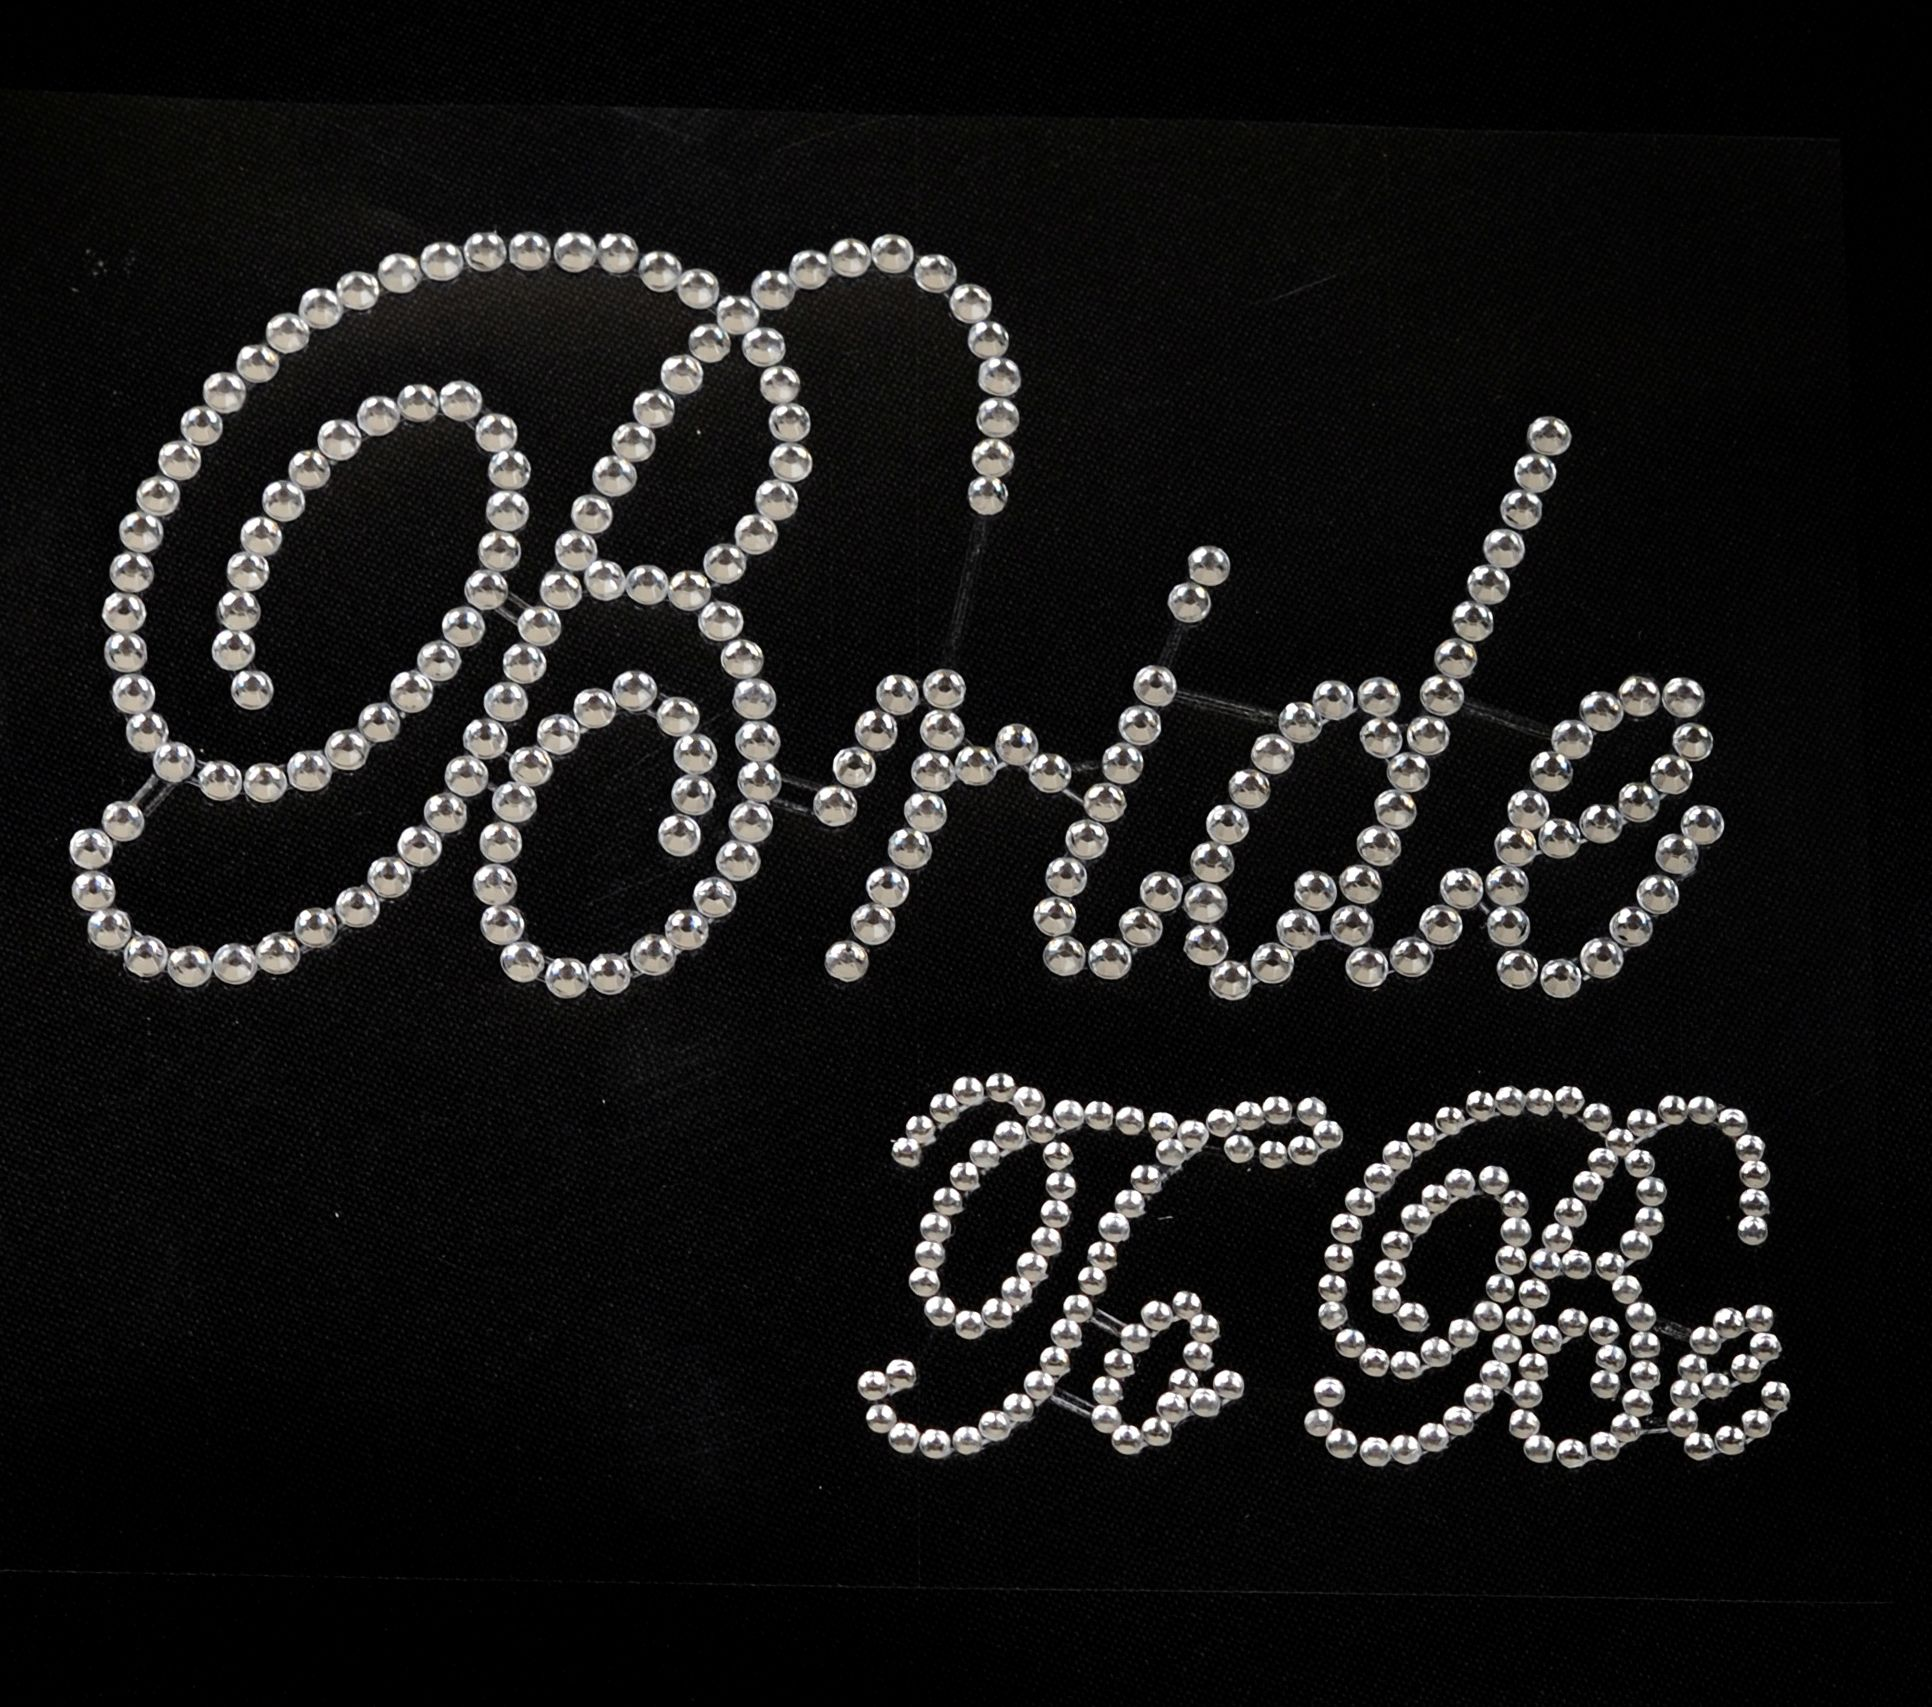 801acf42c7 Rhinestone Bride to Be Laptop Decals Stickers - Clear